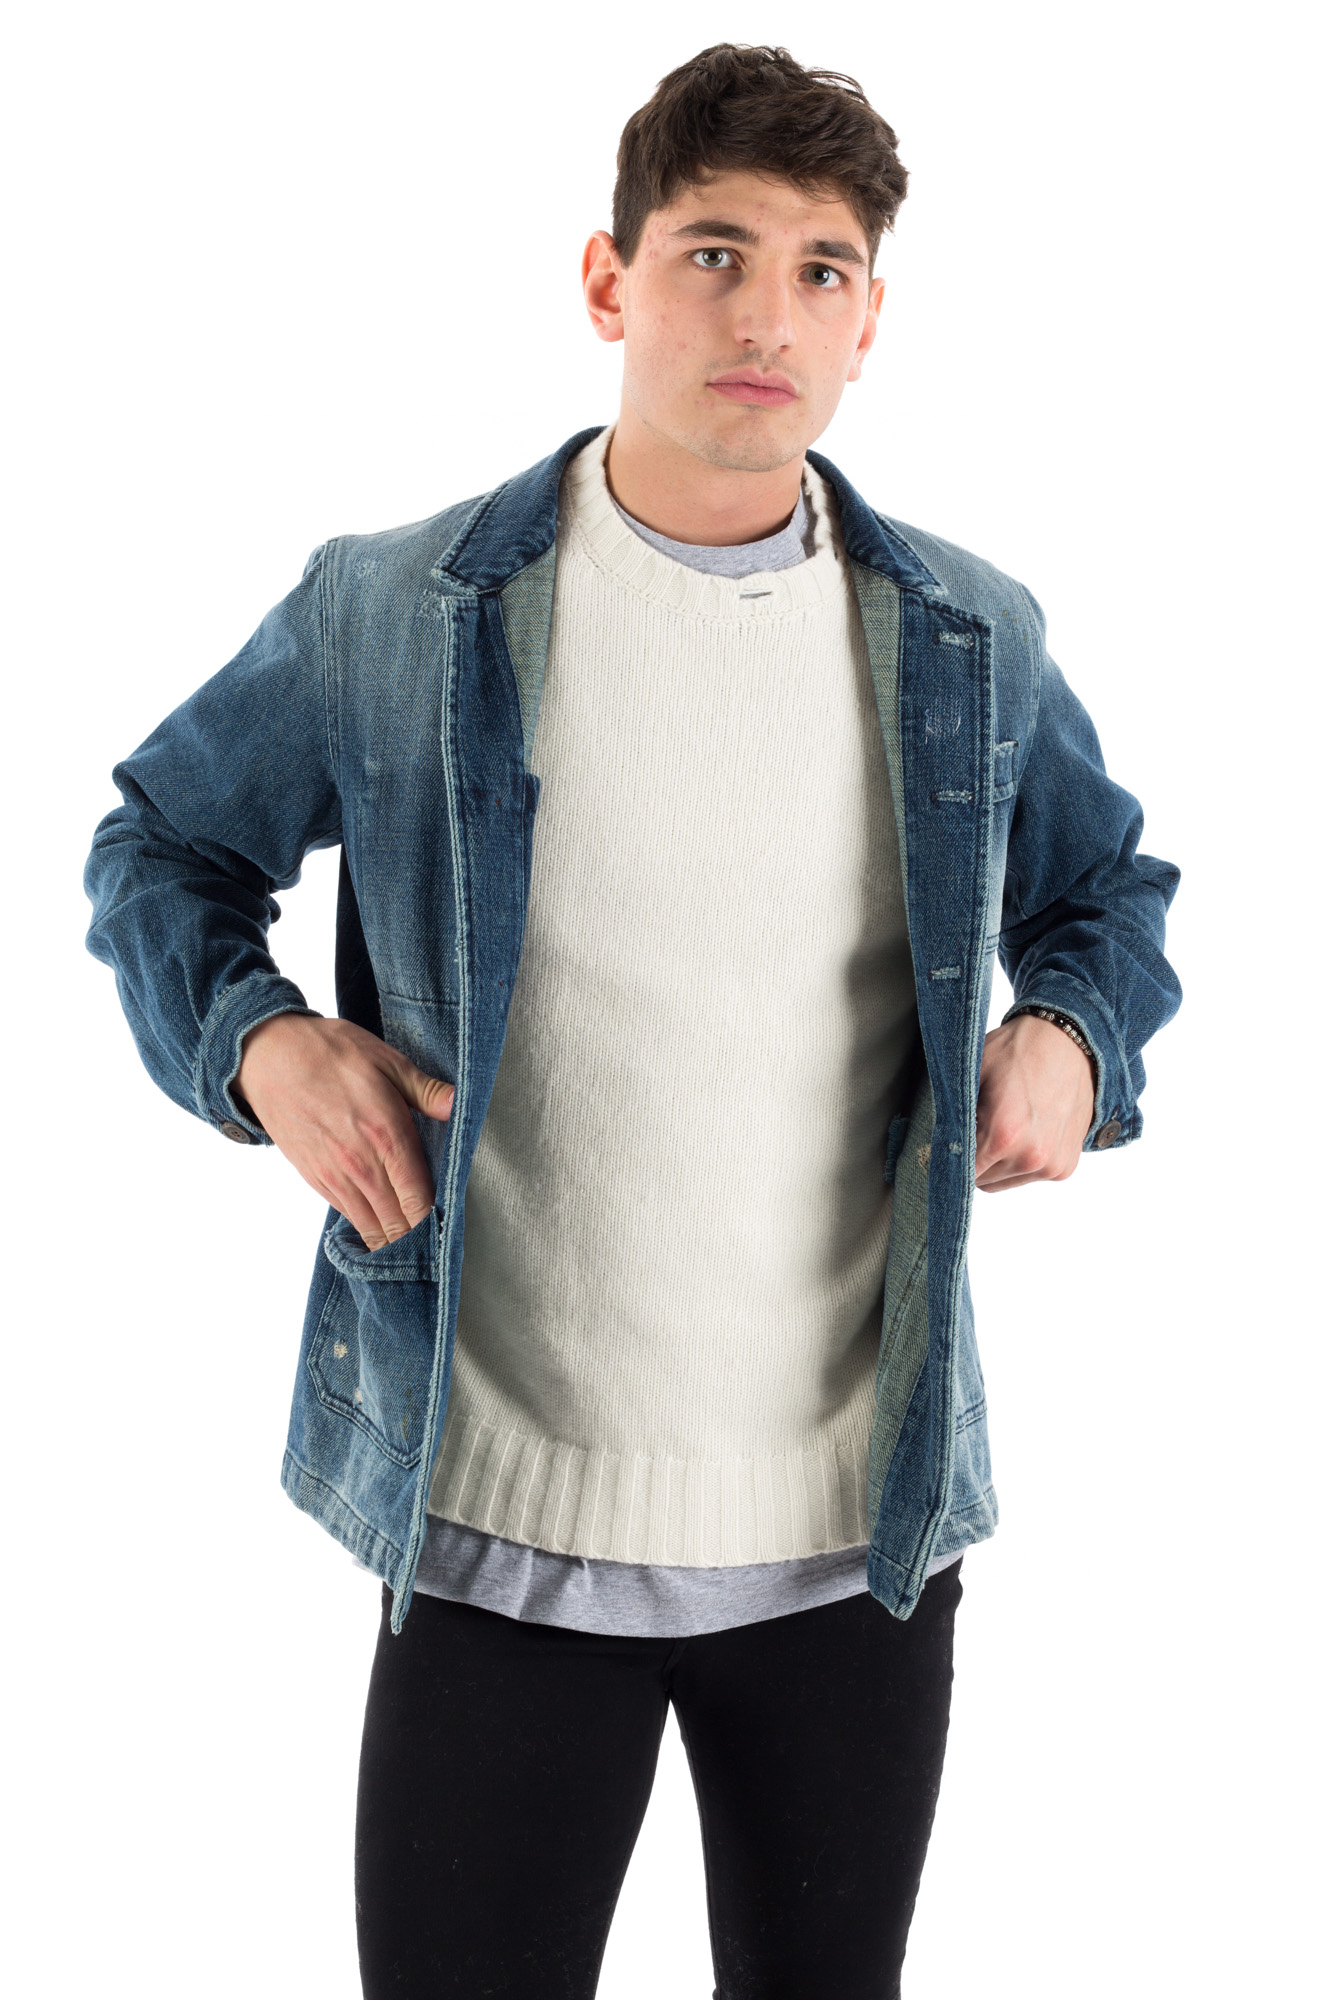 Derrière - Denim jacket with front pockets